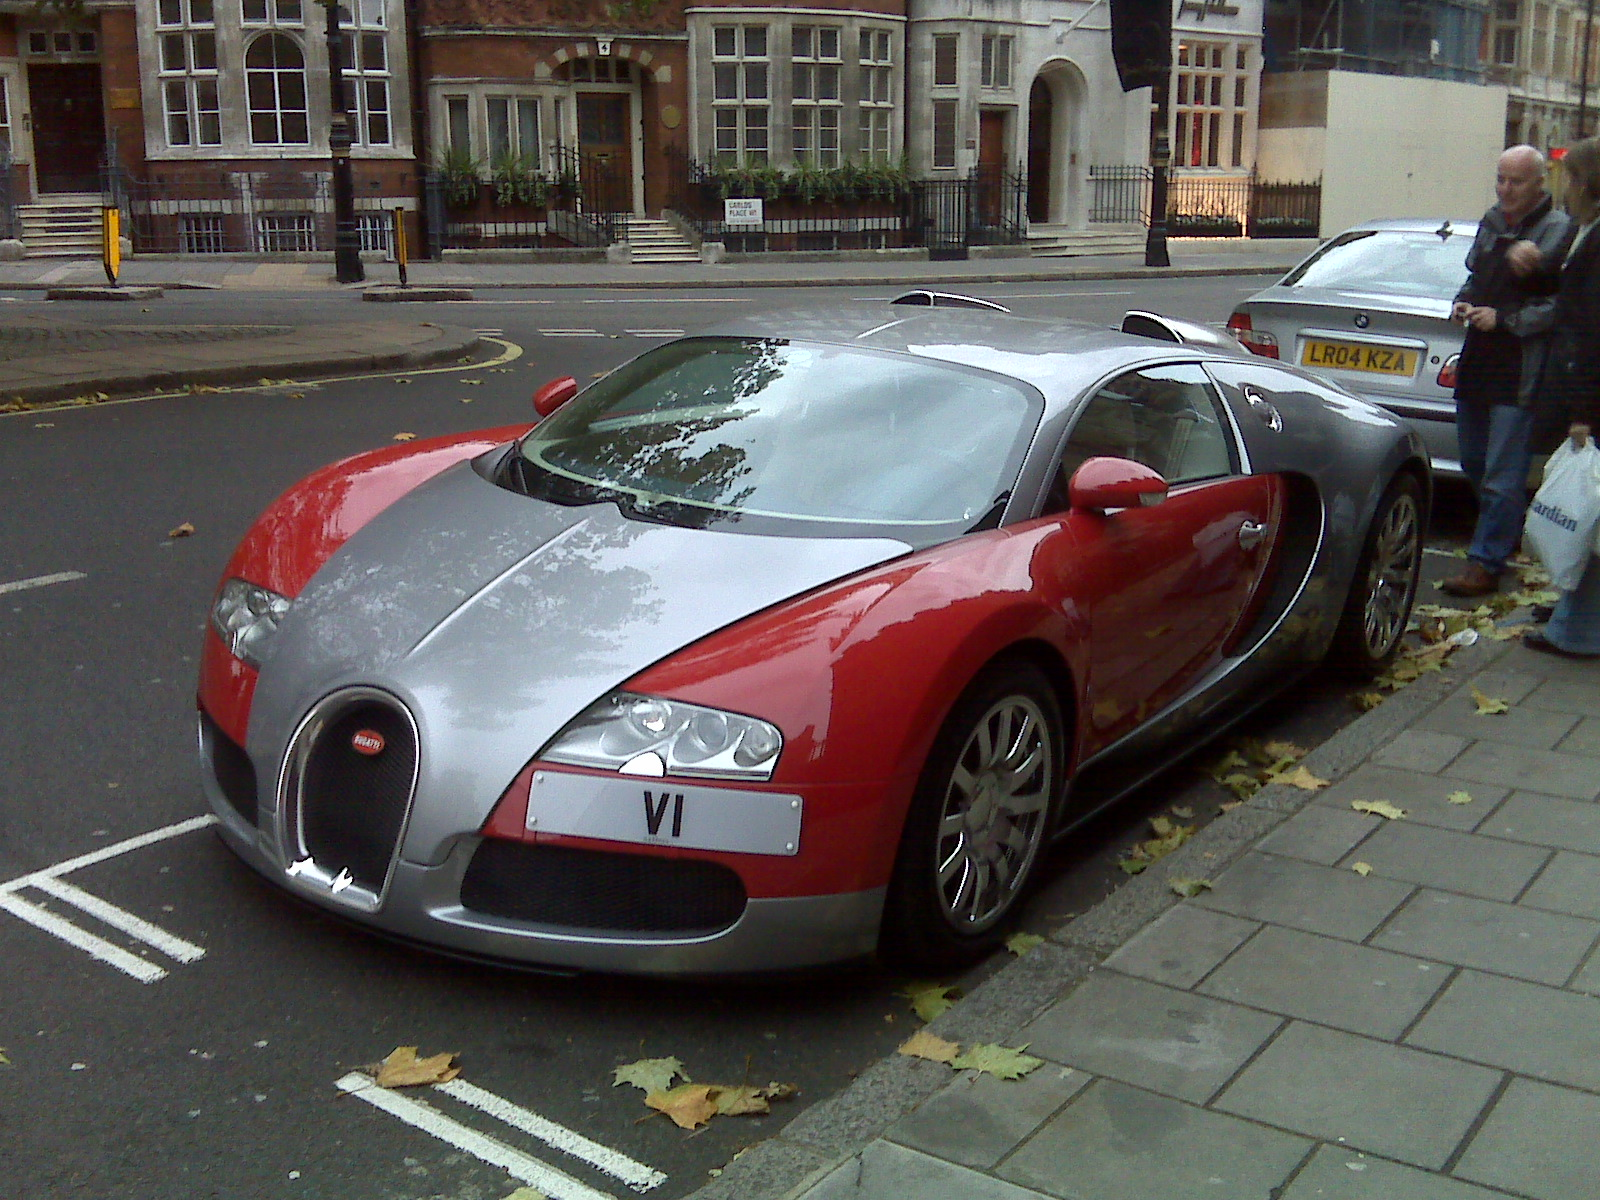 Parked on London's Streets: Bugatti Veyron Wallpaper For Android